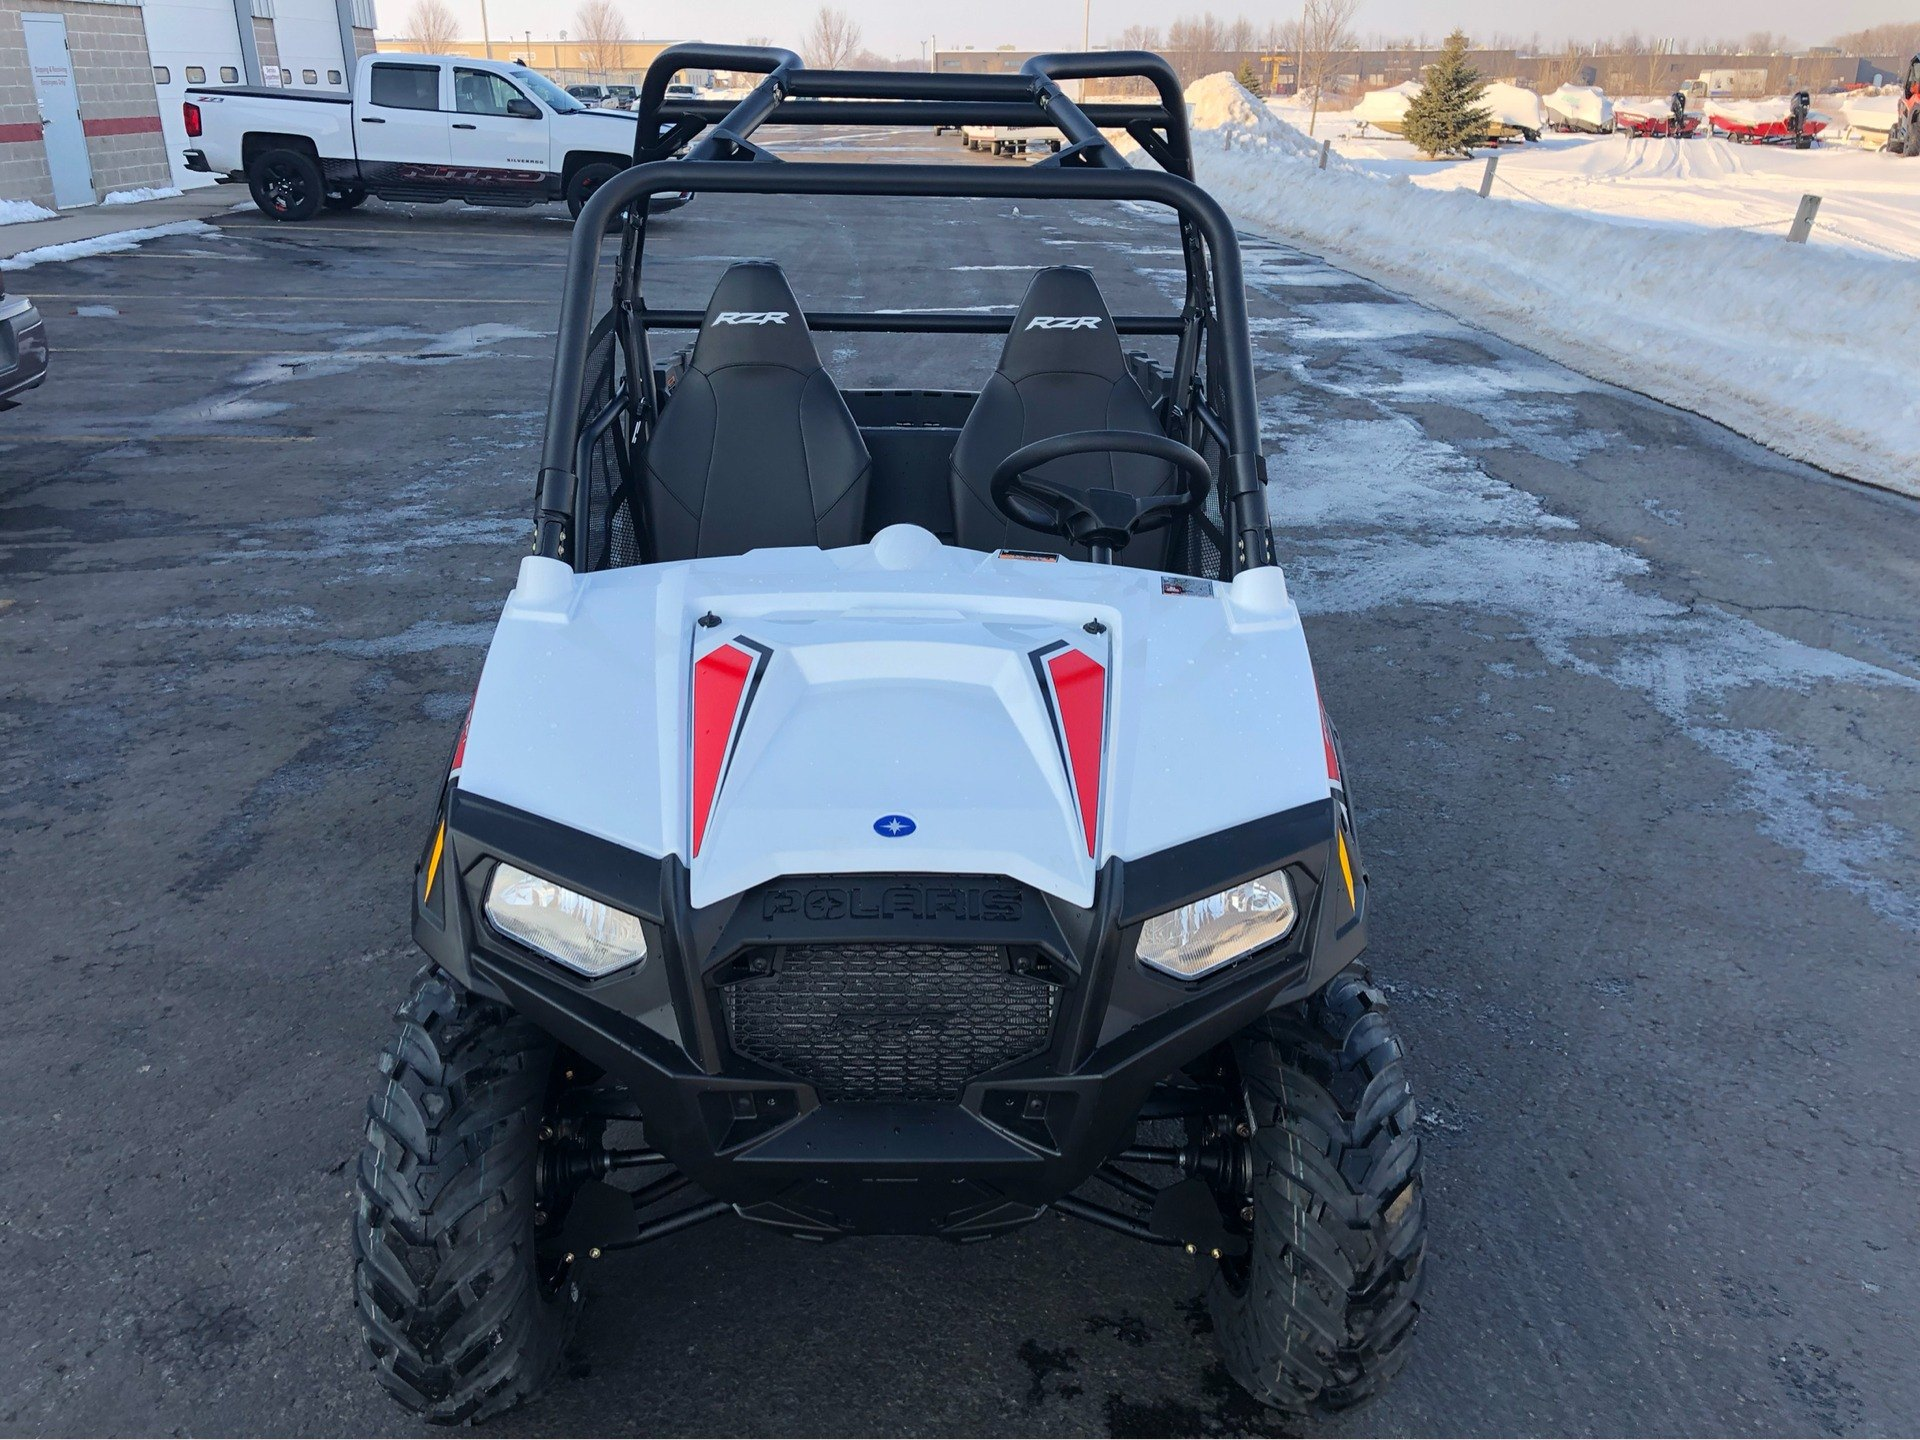 2019 Polaris RZR 570 in Appleton, Wisconsin - Photo 2